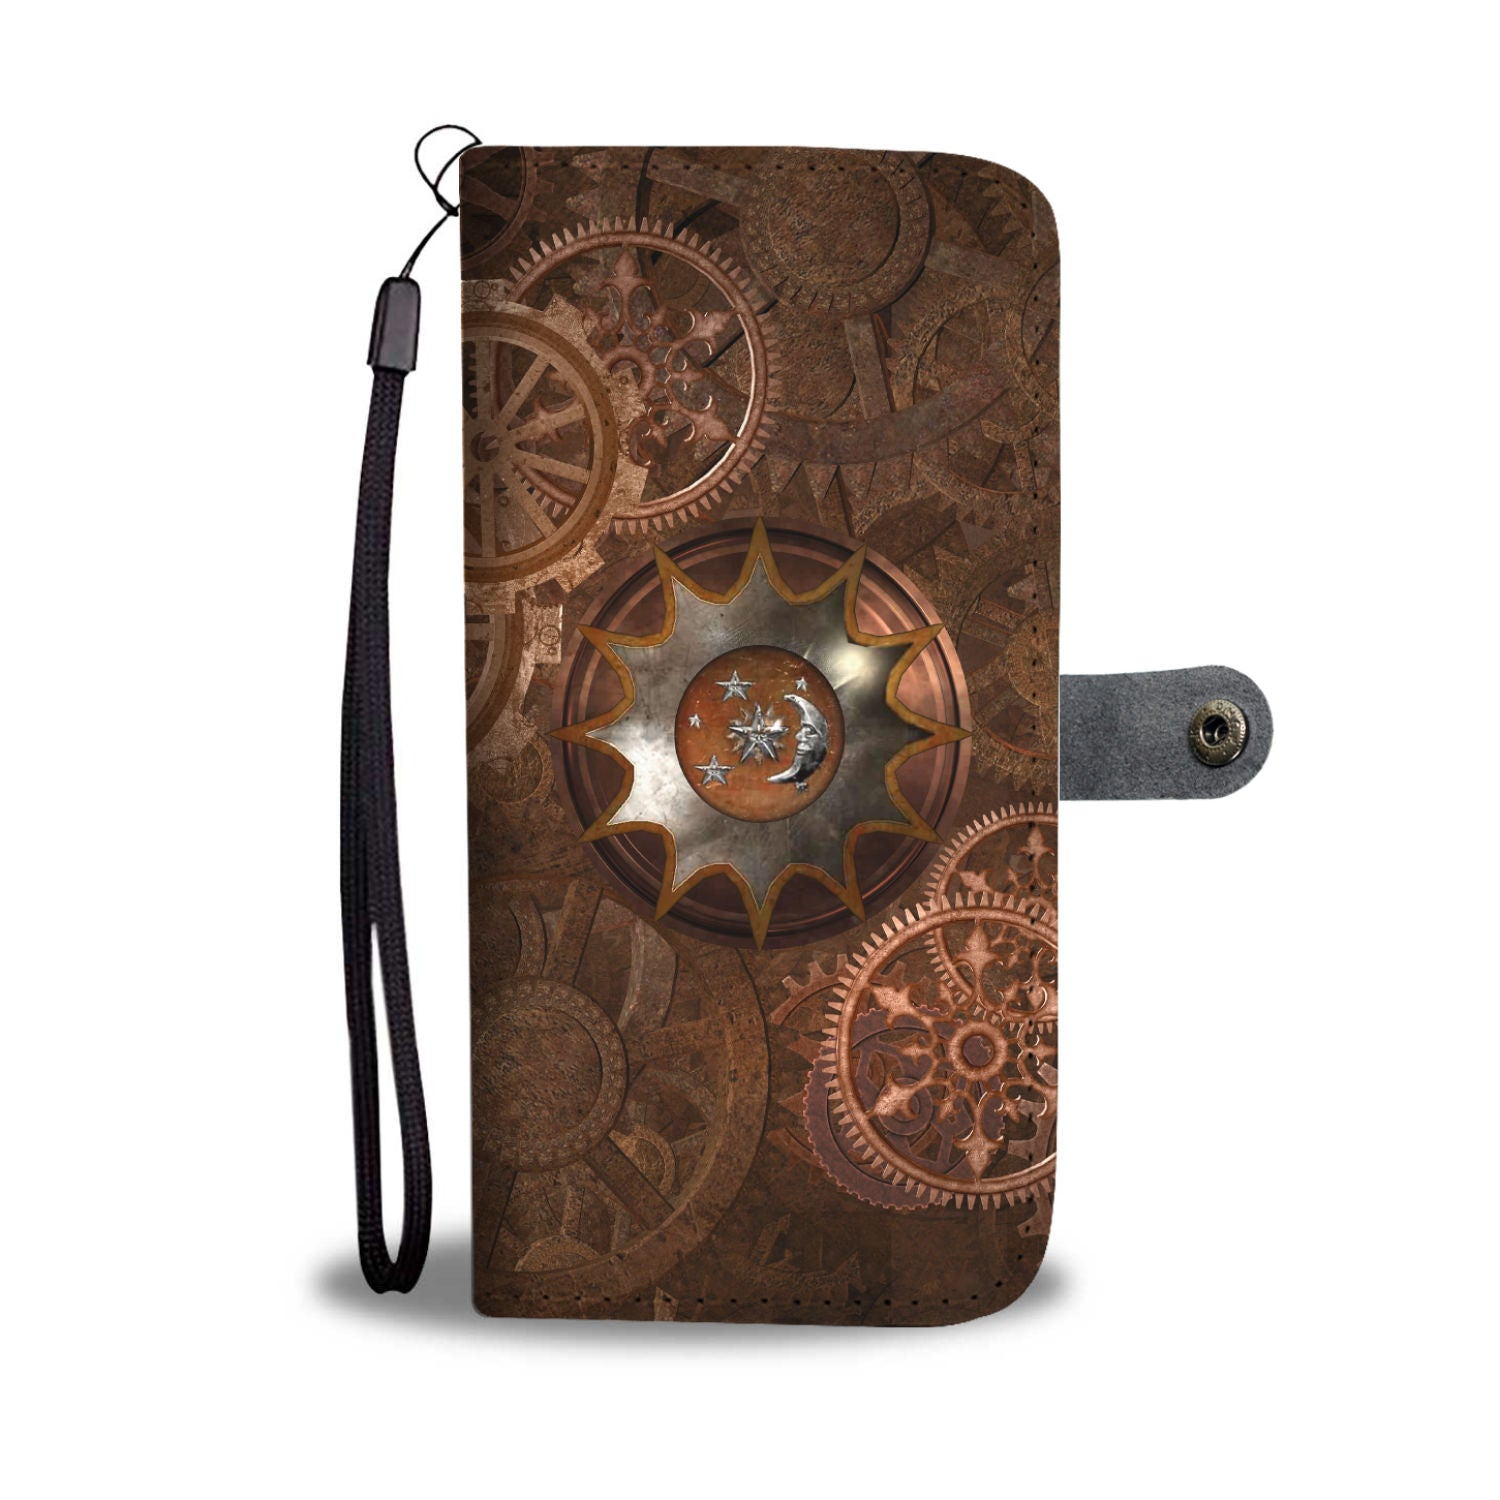 Moon Cogs Phone Wallet - Hello Moa